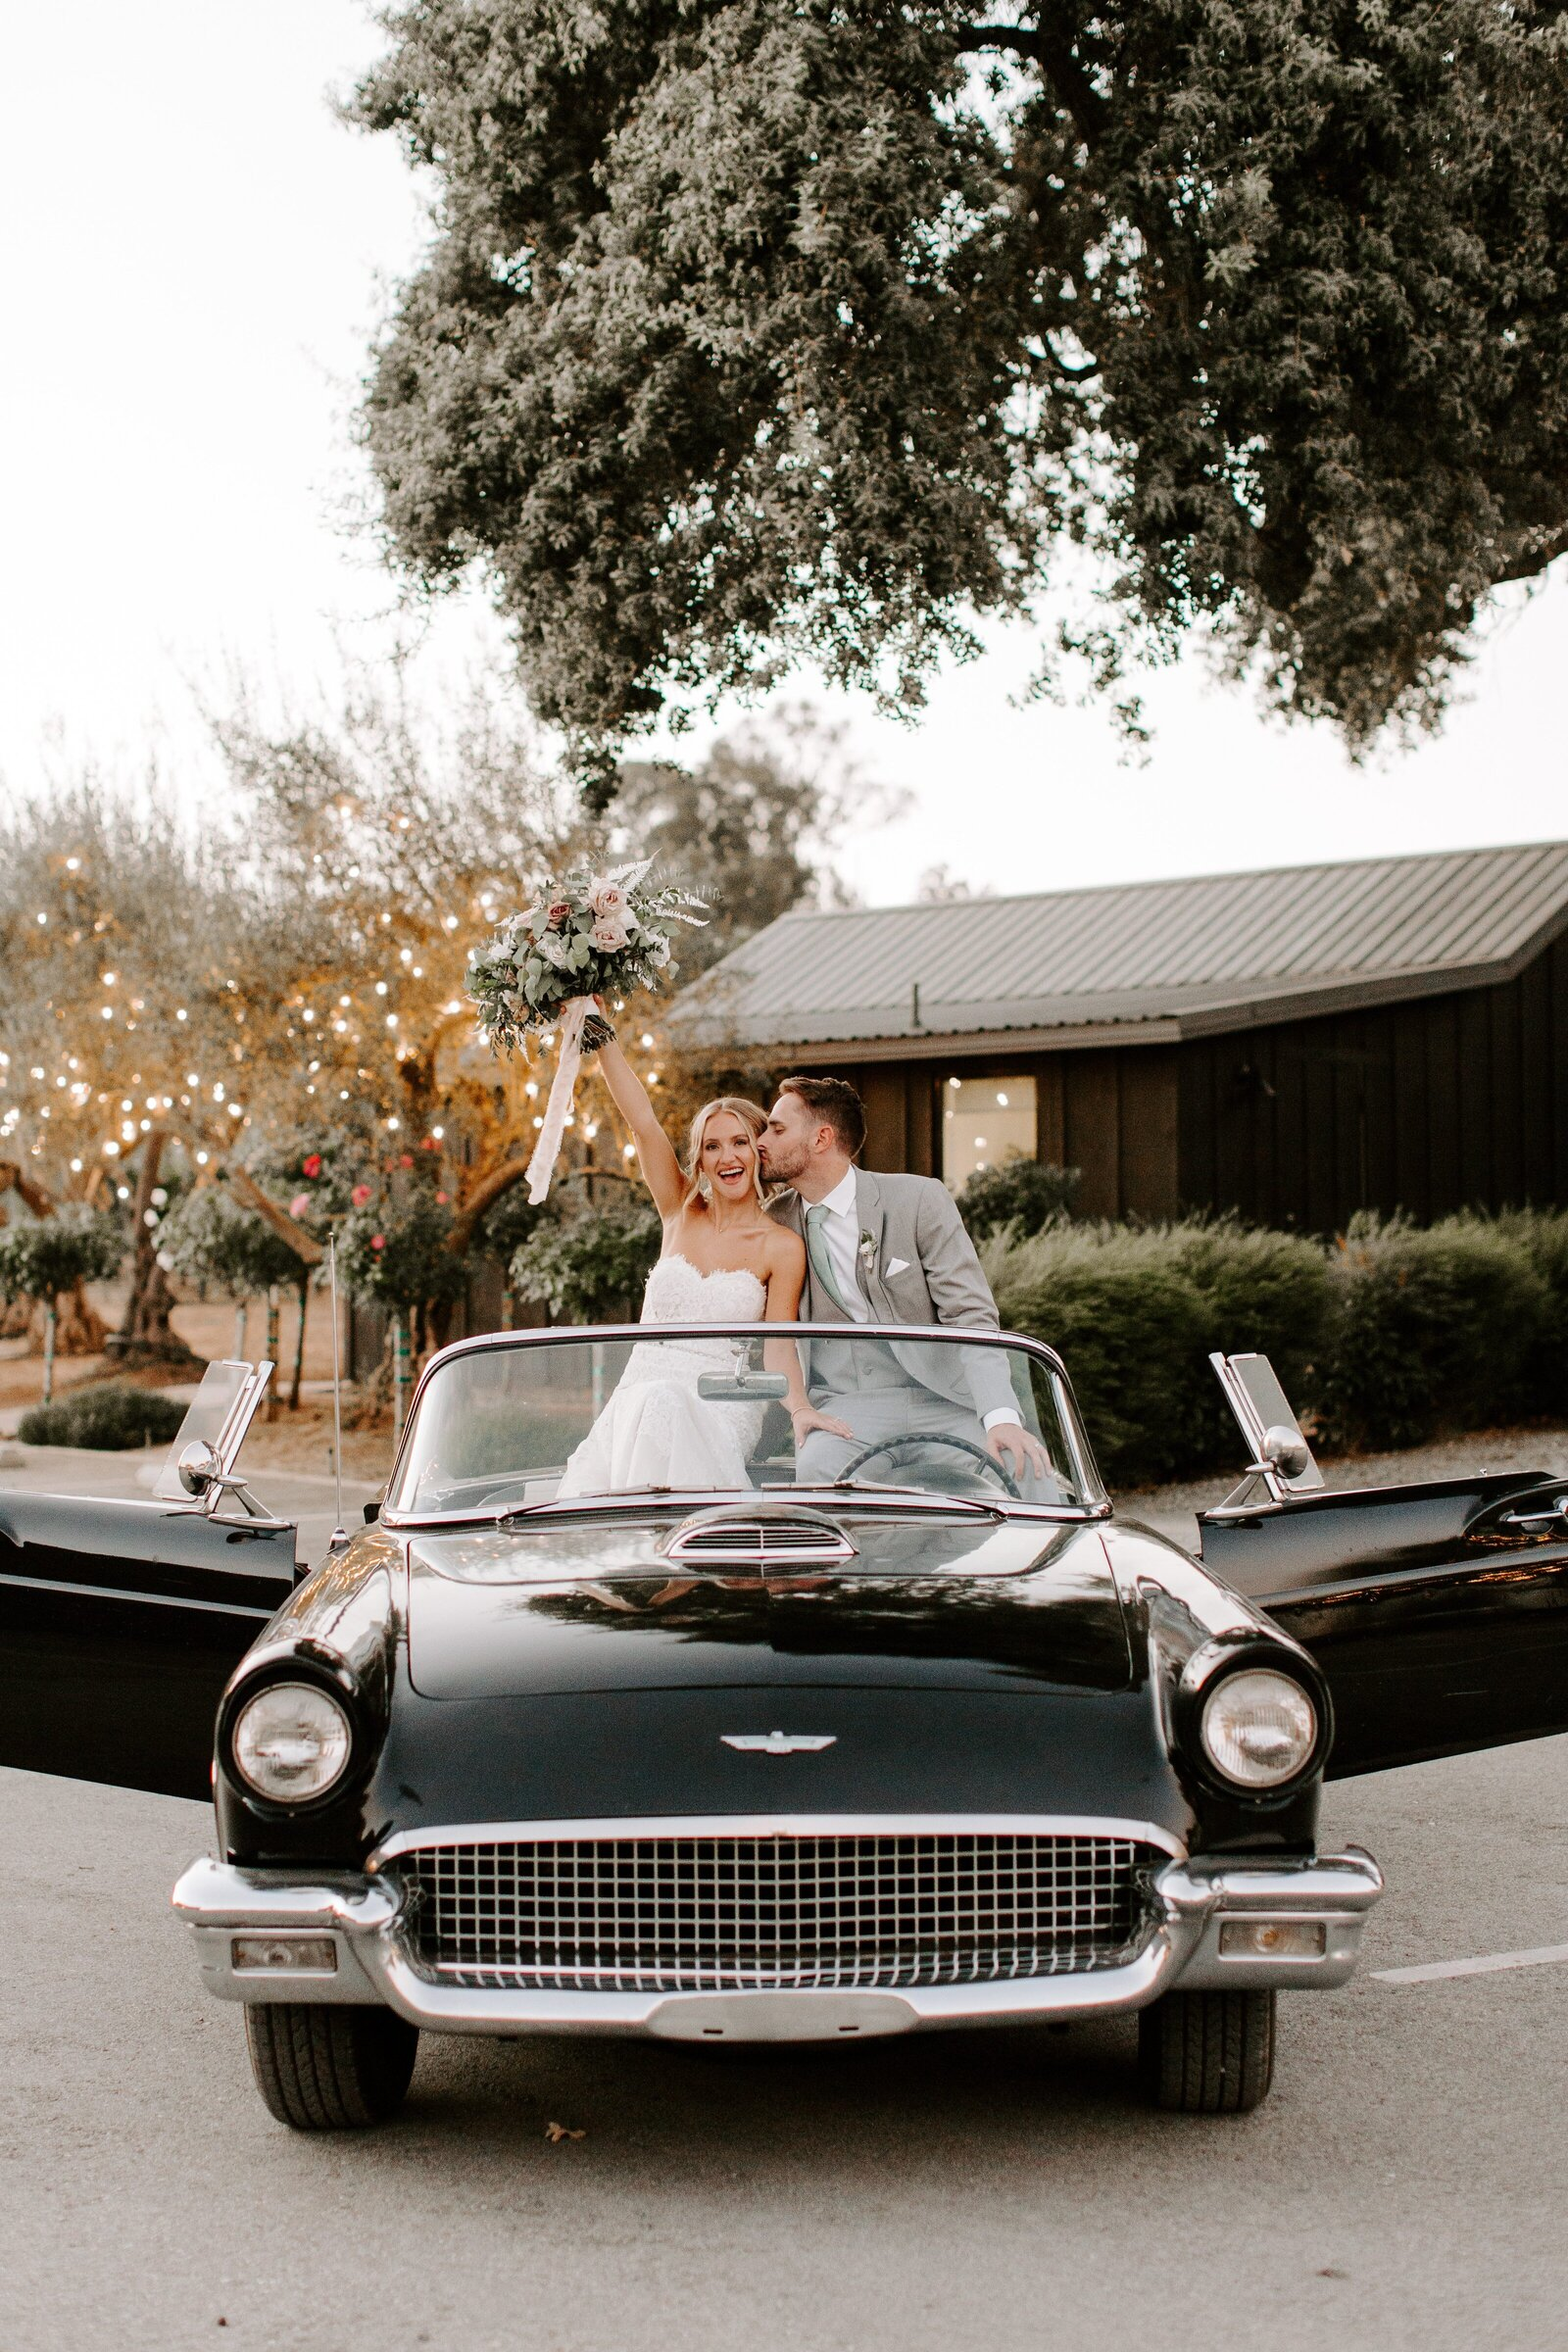 Megan-Ryan_Sycamore-Creek-Vineyards_Hannah-Berglund-Photography-869